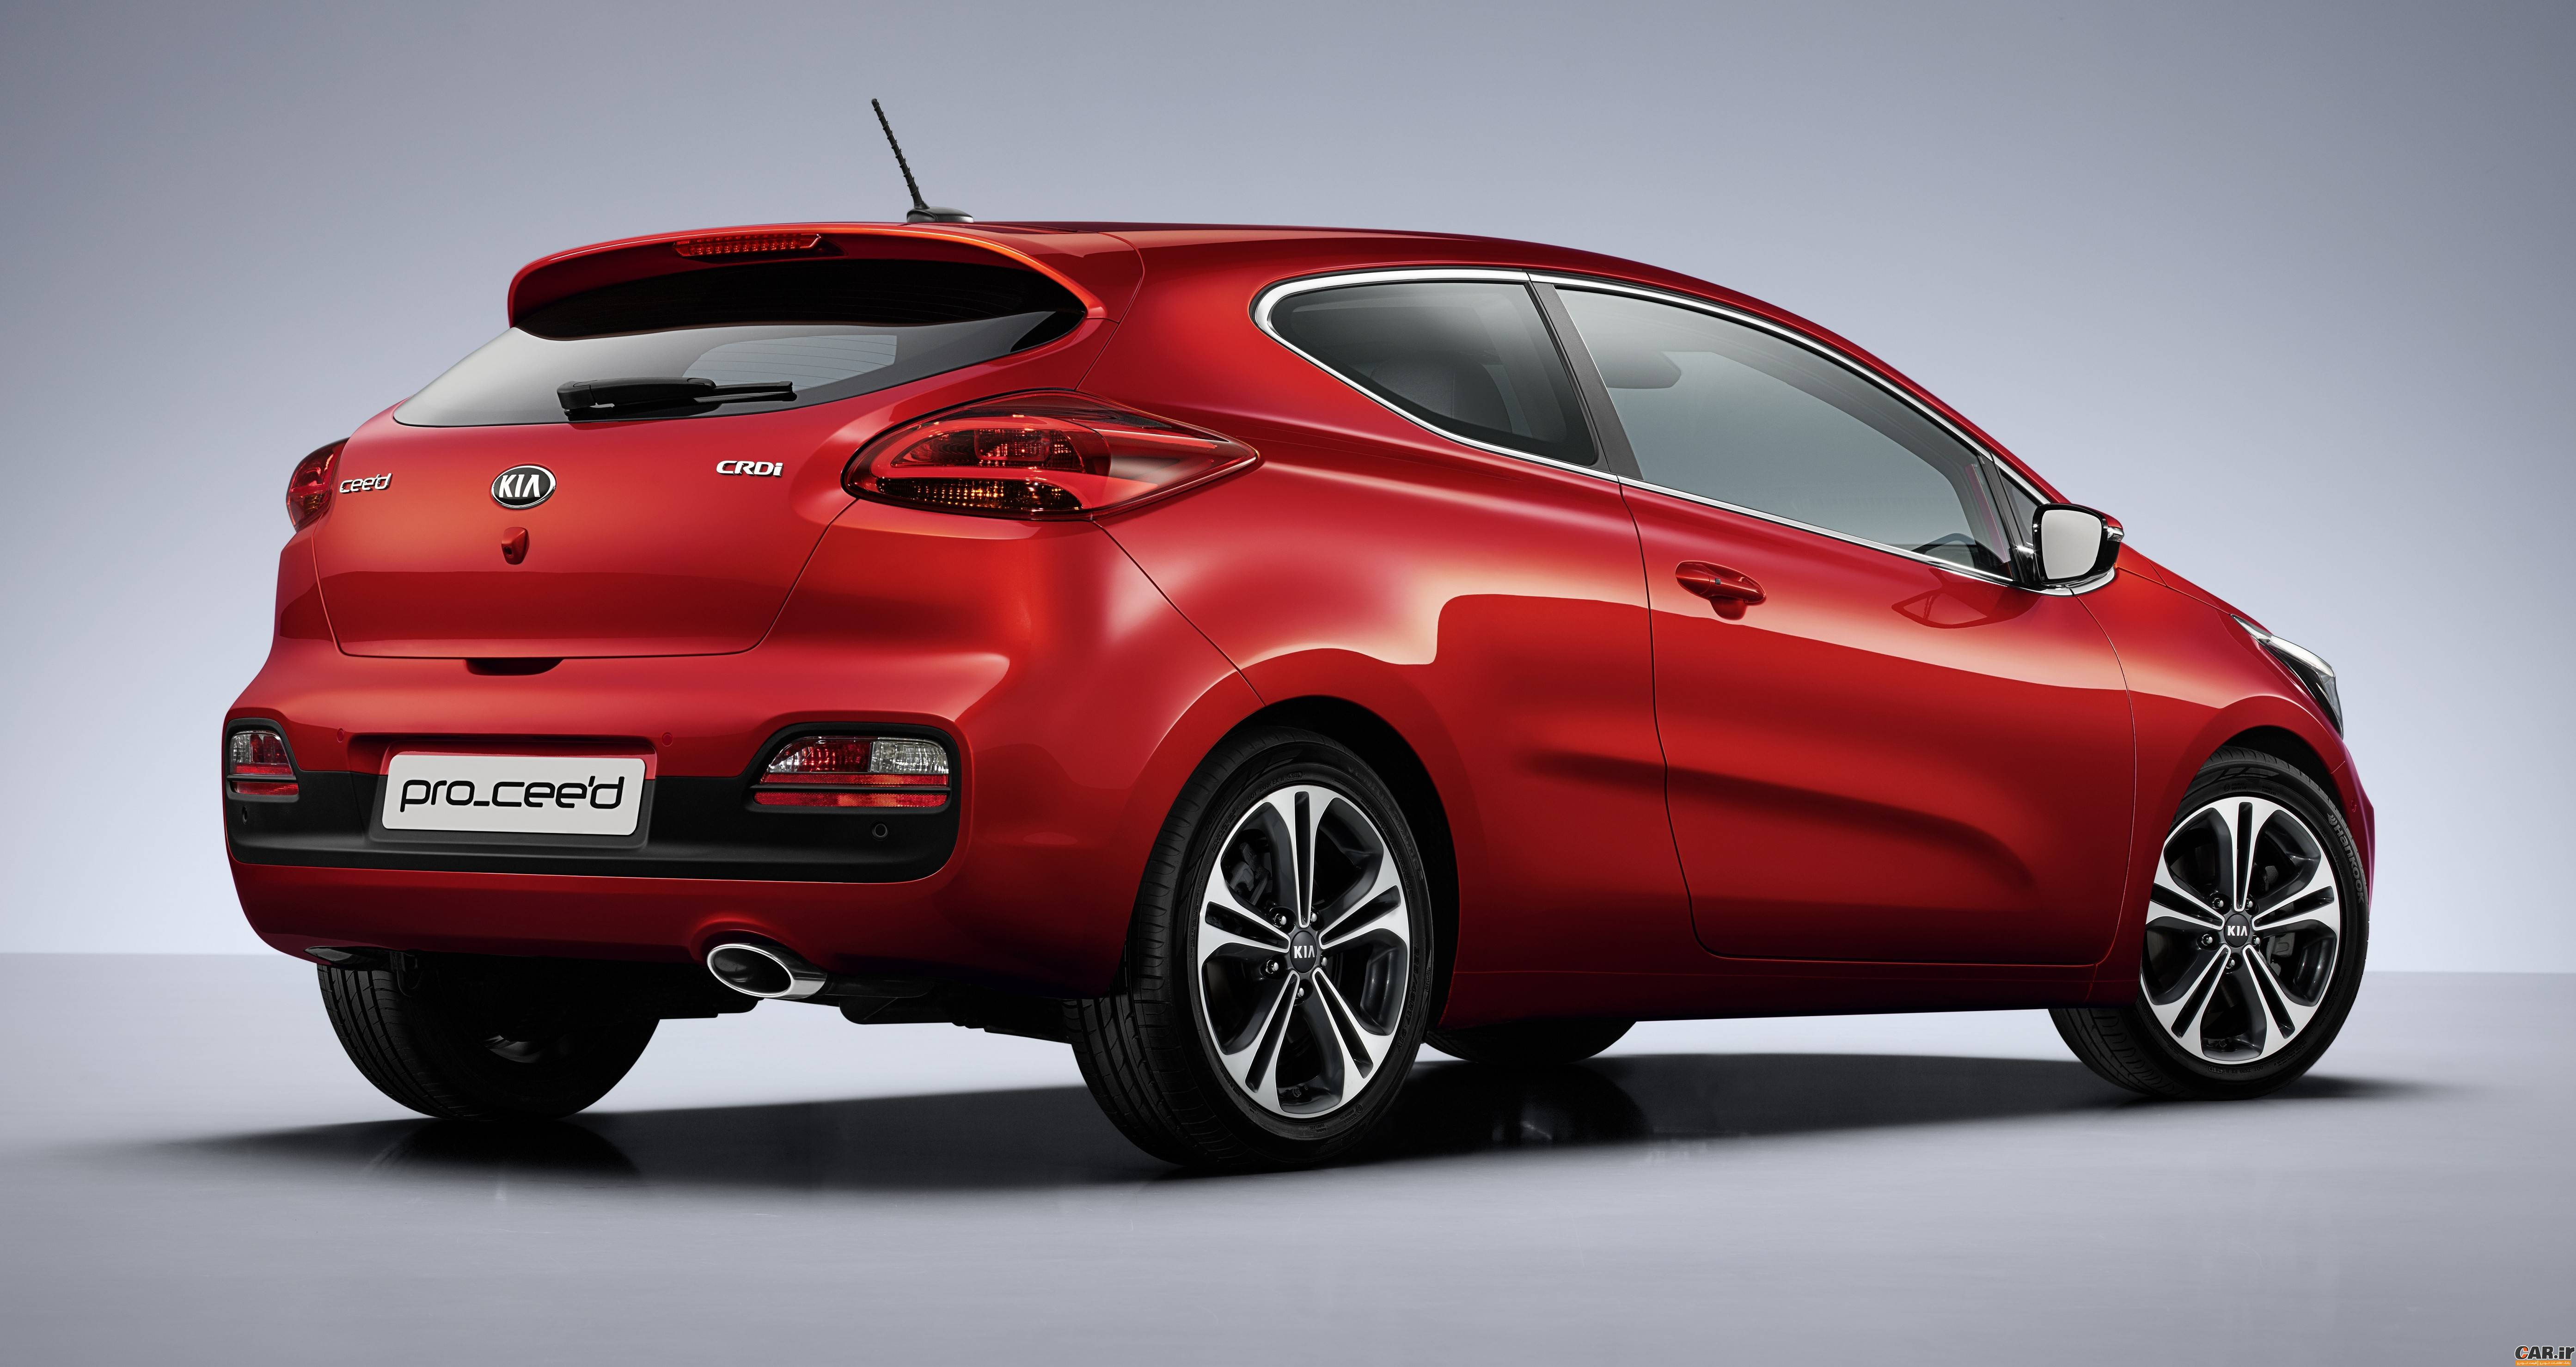 Geely Emgrand 7 (EC7) exterior specifications